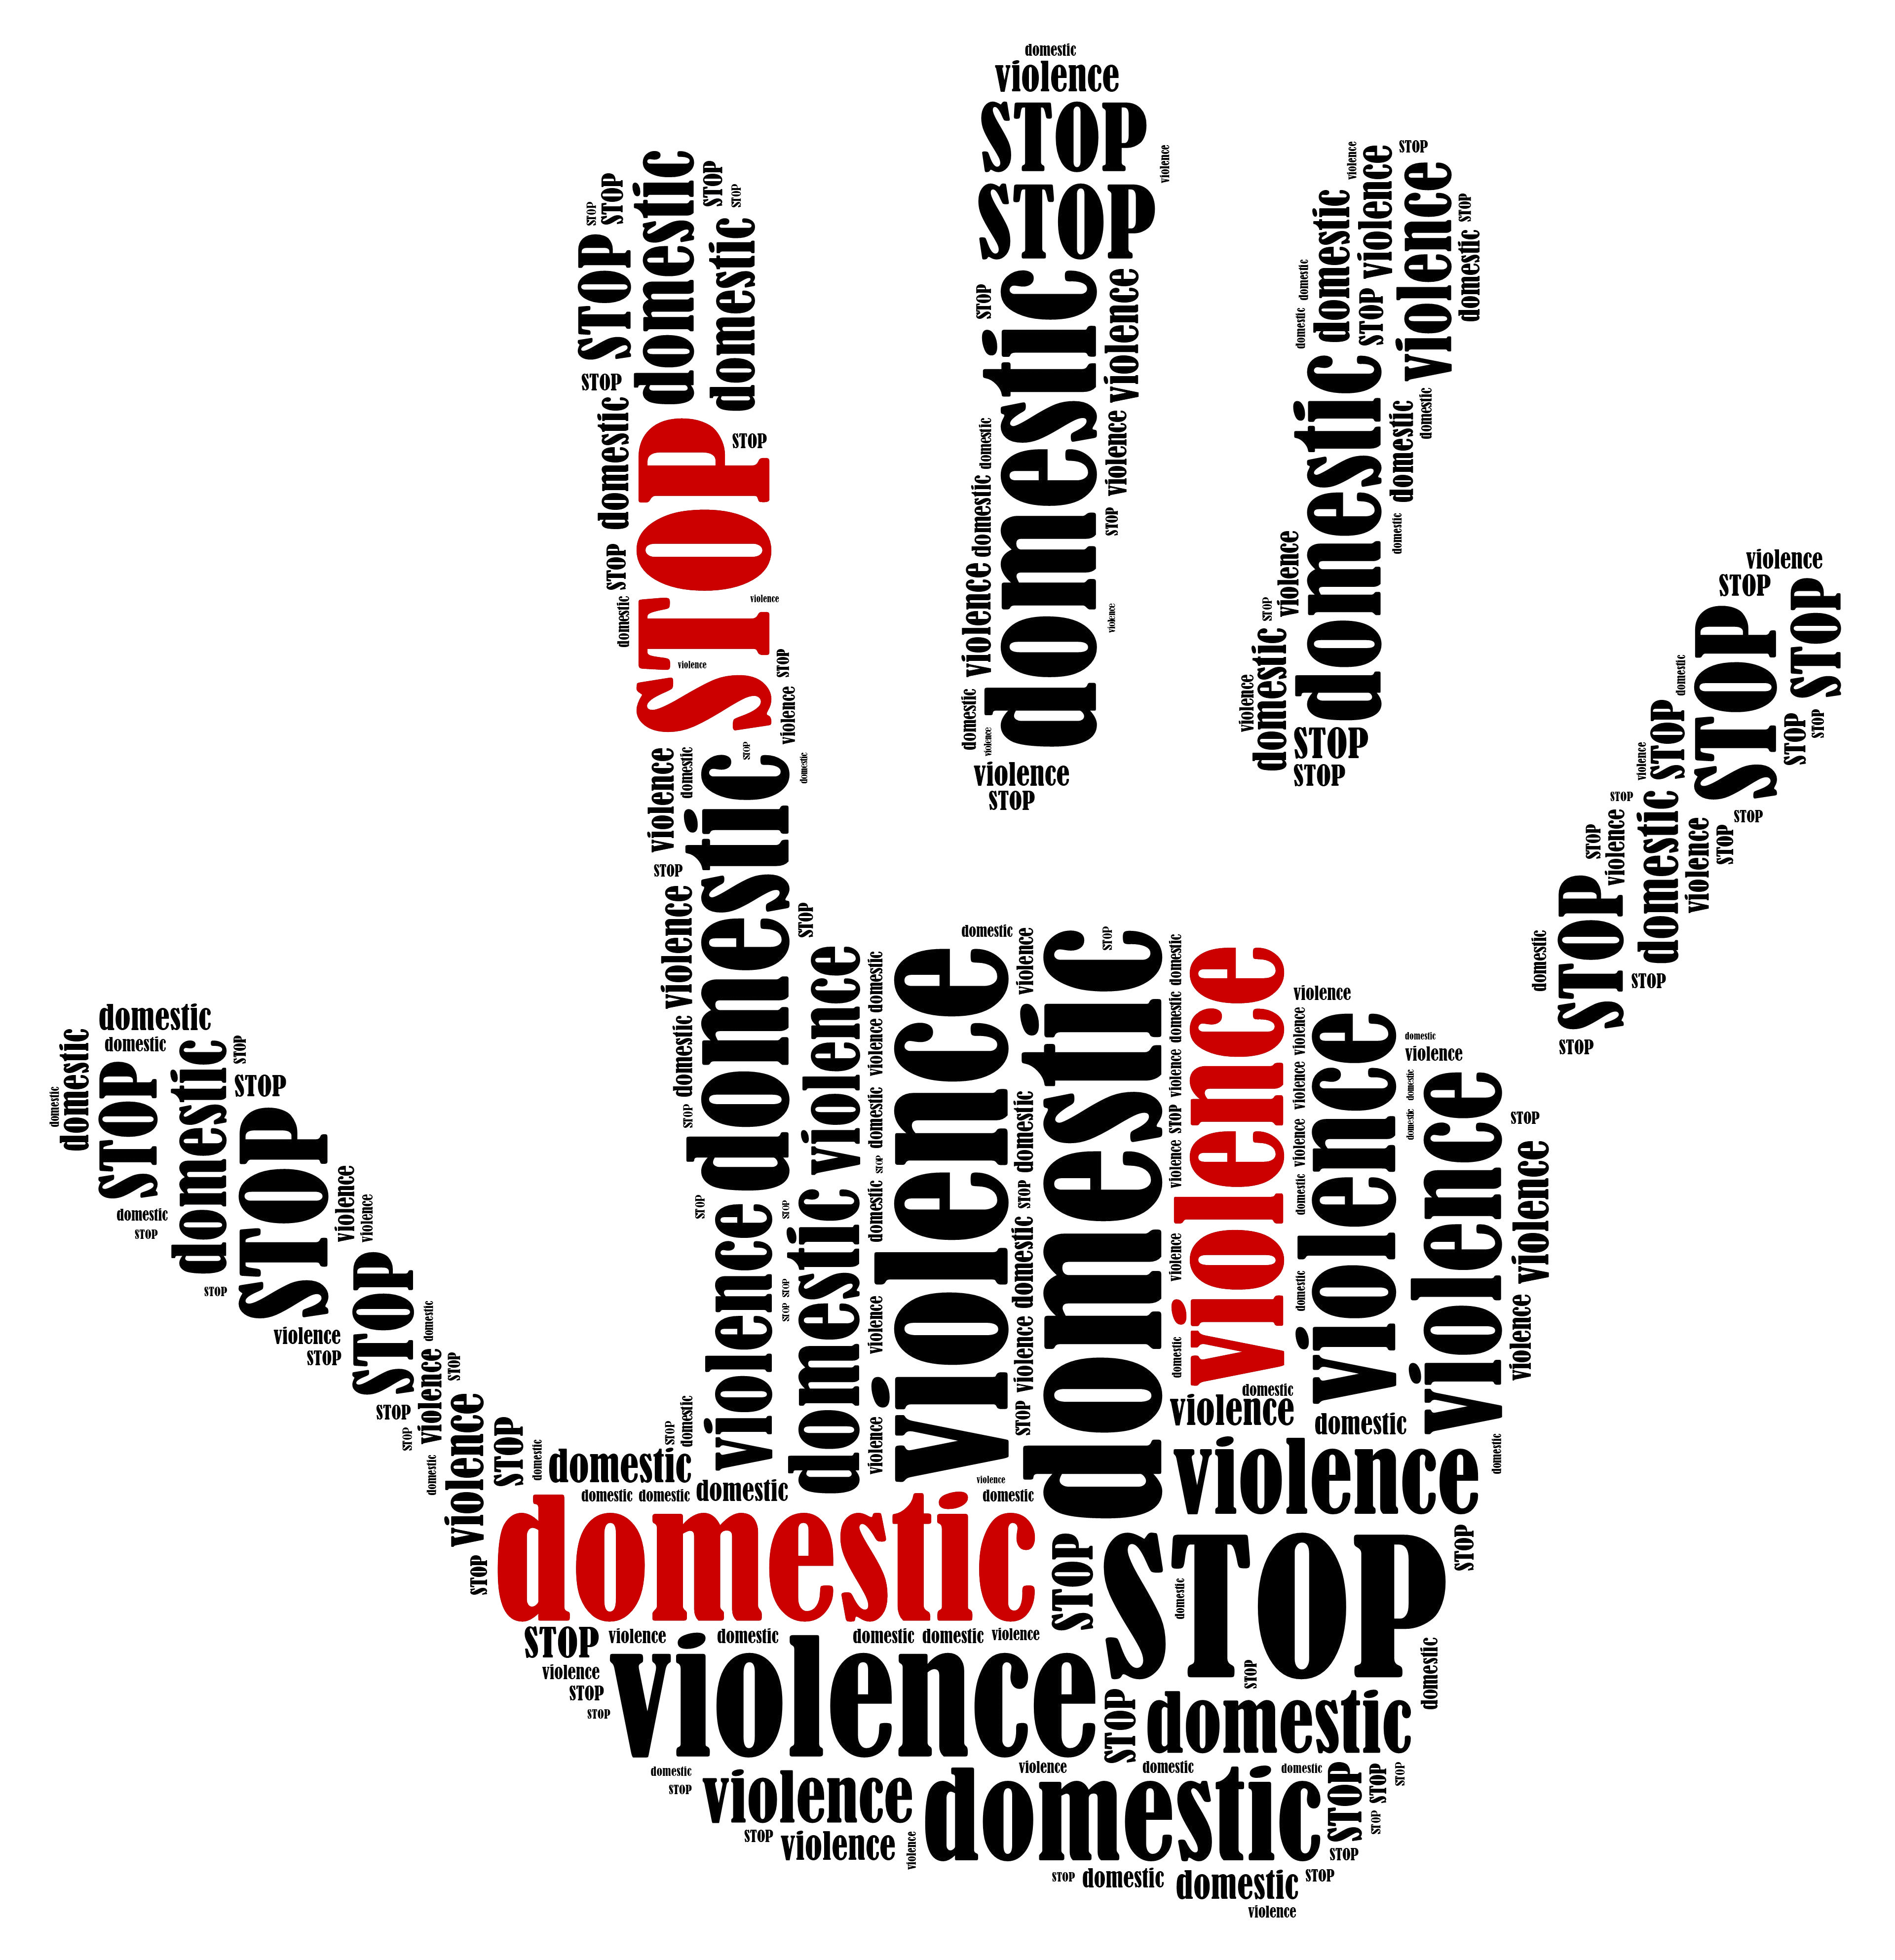 Domestic violence powerpoint fieldstation domestic violence powerpoint toneelgroepblik Choice Image